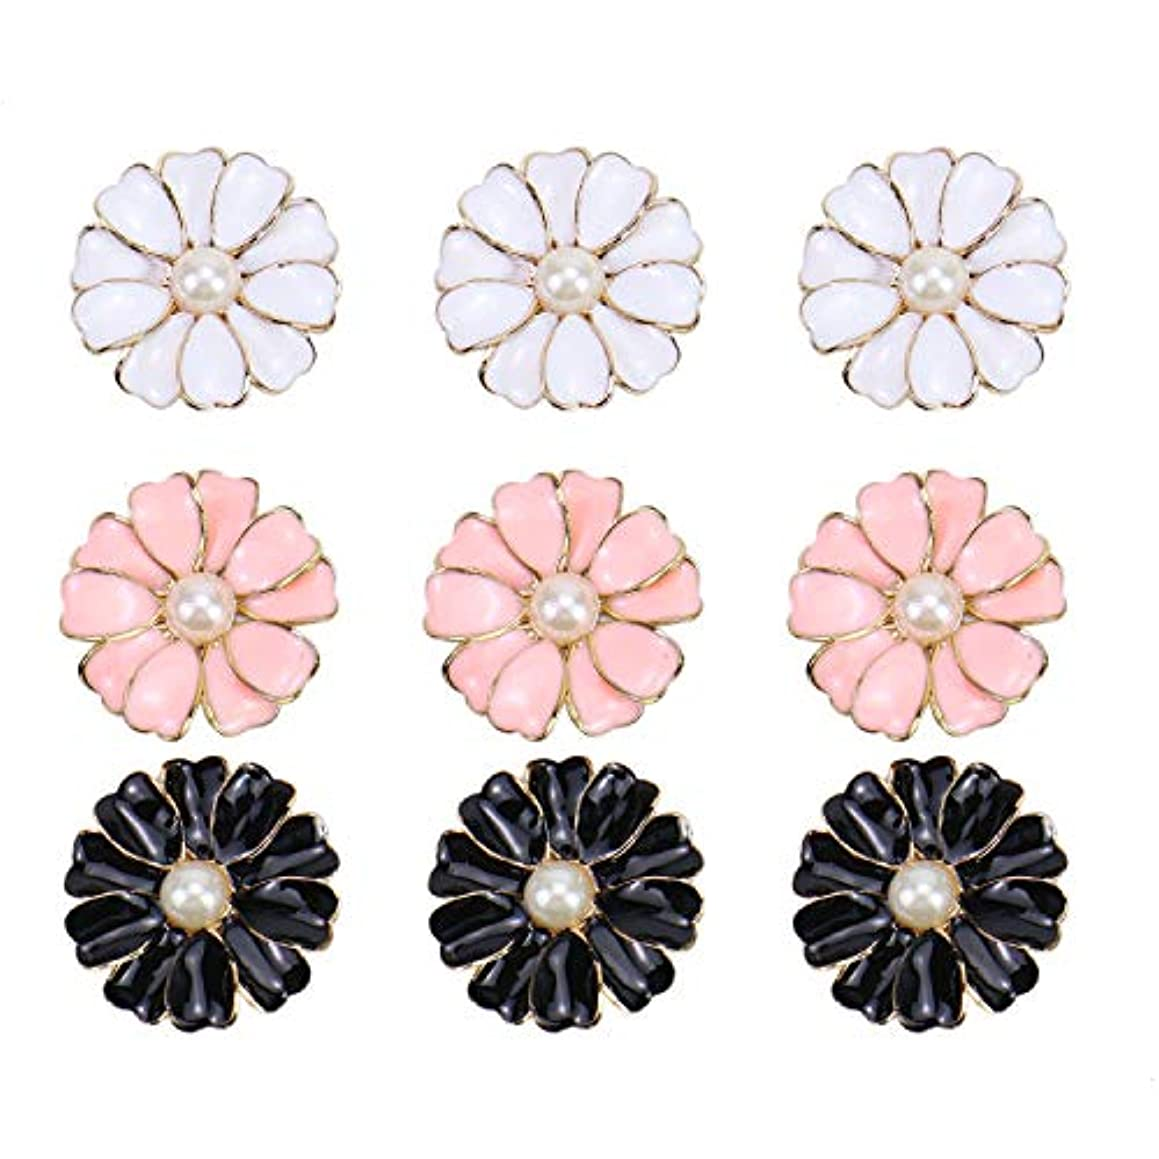 Monrocco 24Pcs 3Colors Metal Pearl Flower Flatback Button Embellishments for Crafts Scrapbooking